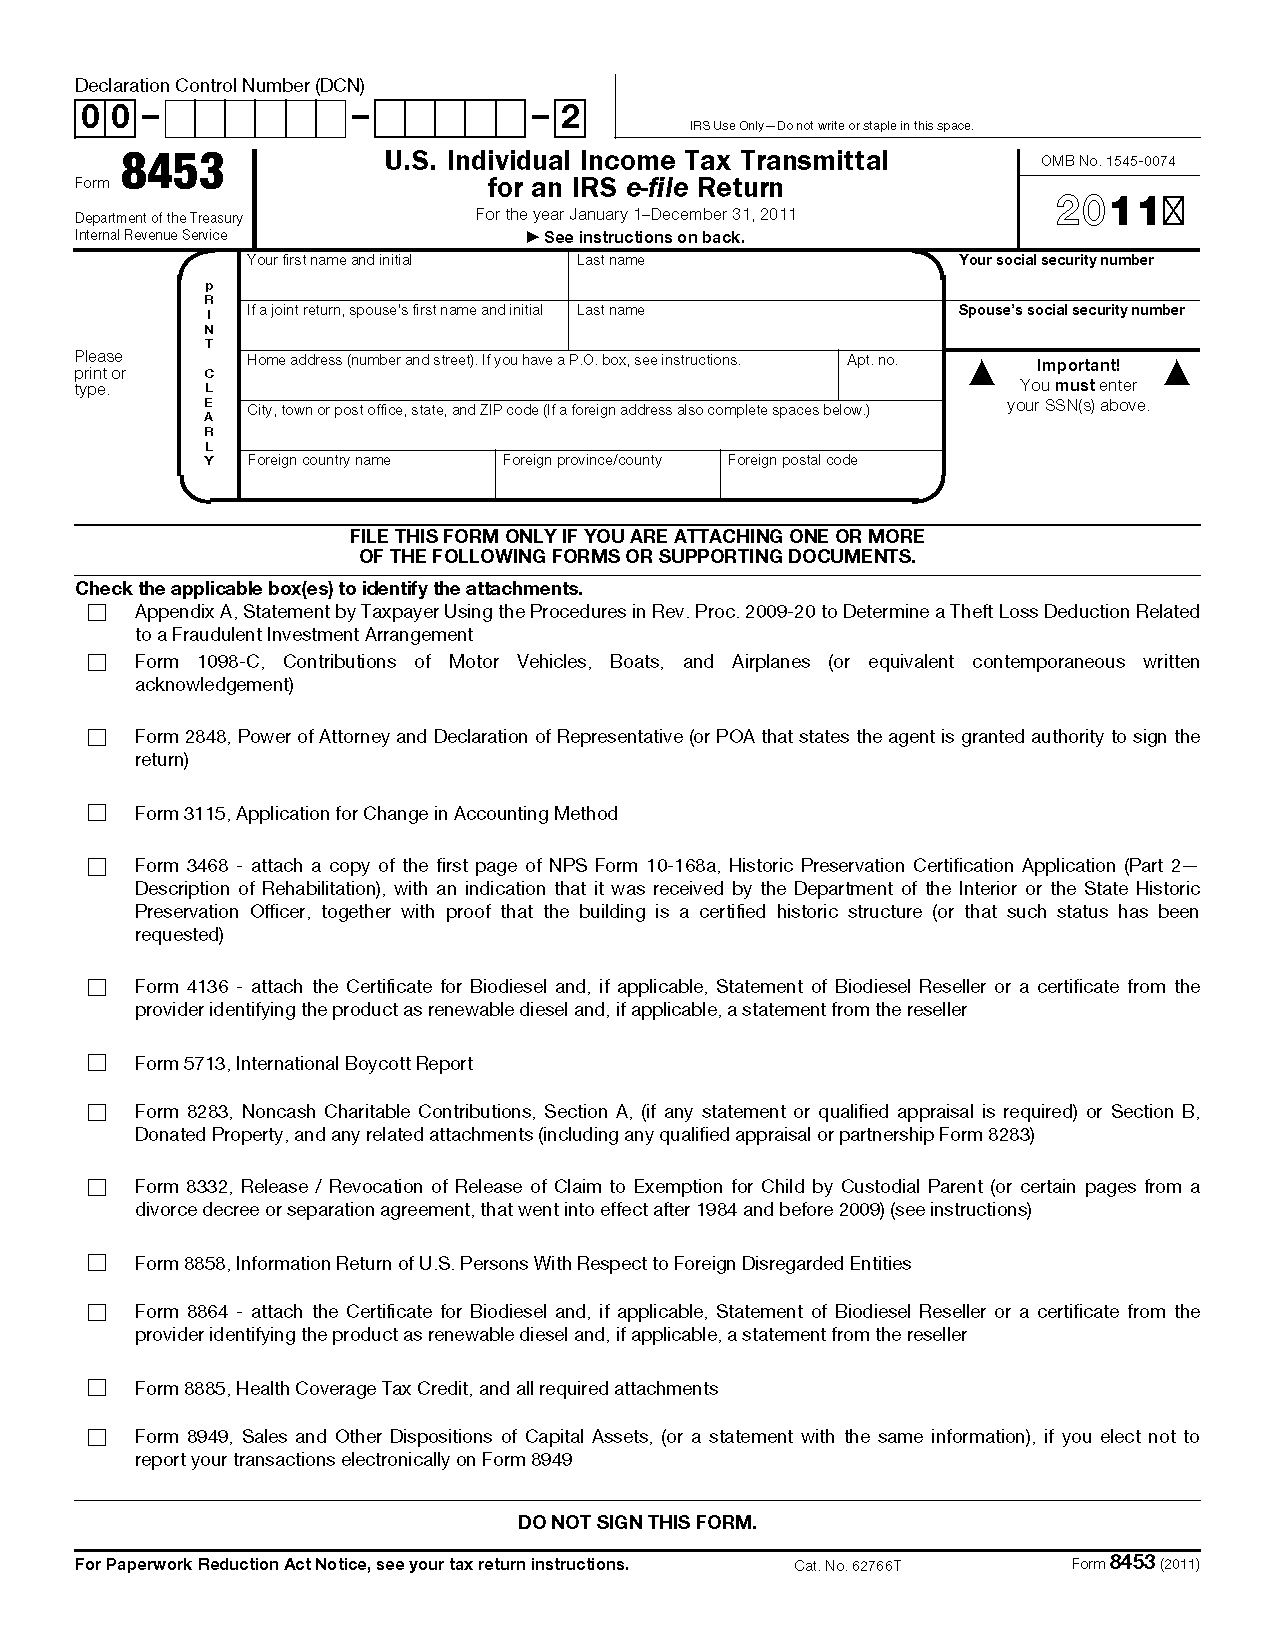 Form 8453 U.S. Individual Income Tax Transmittal for an IRS e-file ...